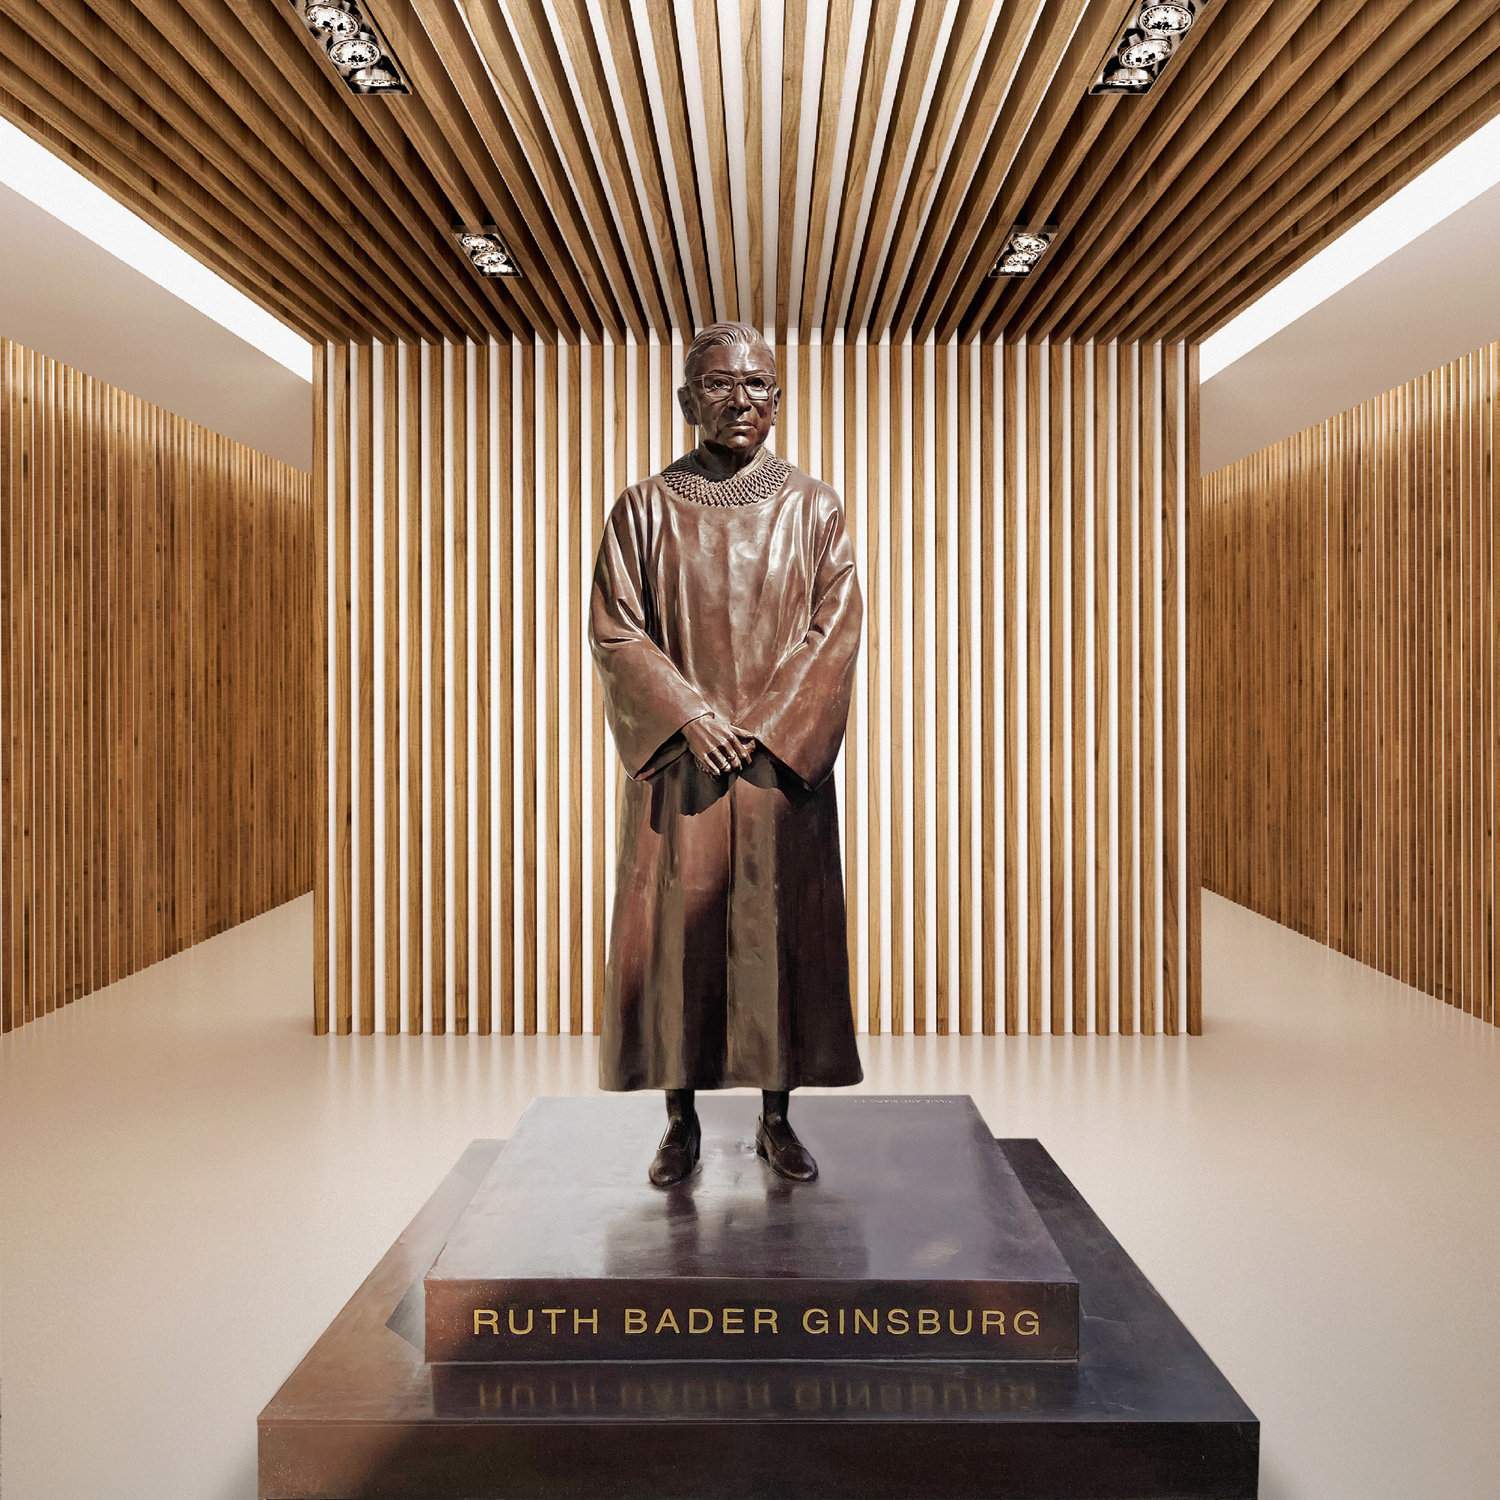 A bronze statue of Ruth Bader Ginsburg will be unveiled in front of City Point